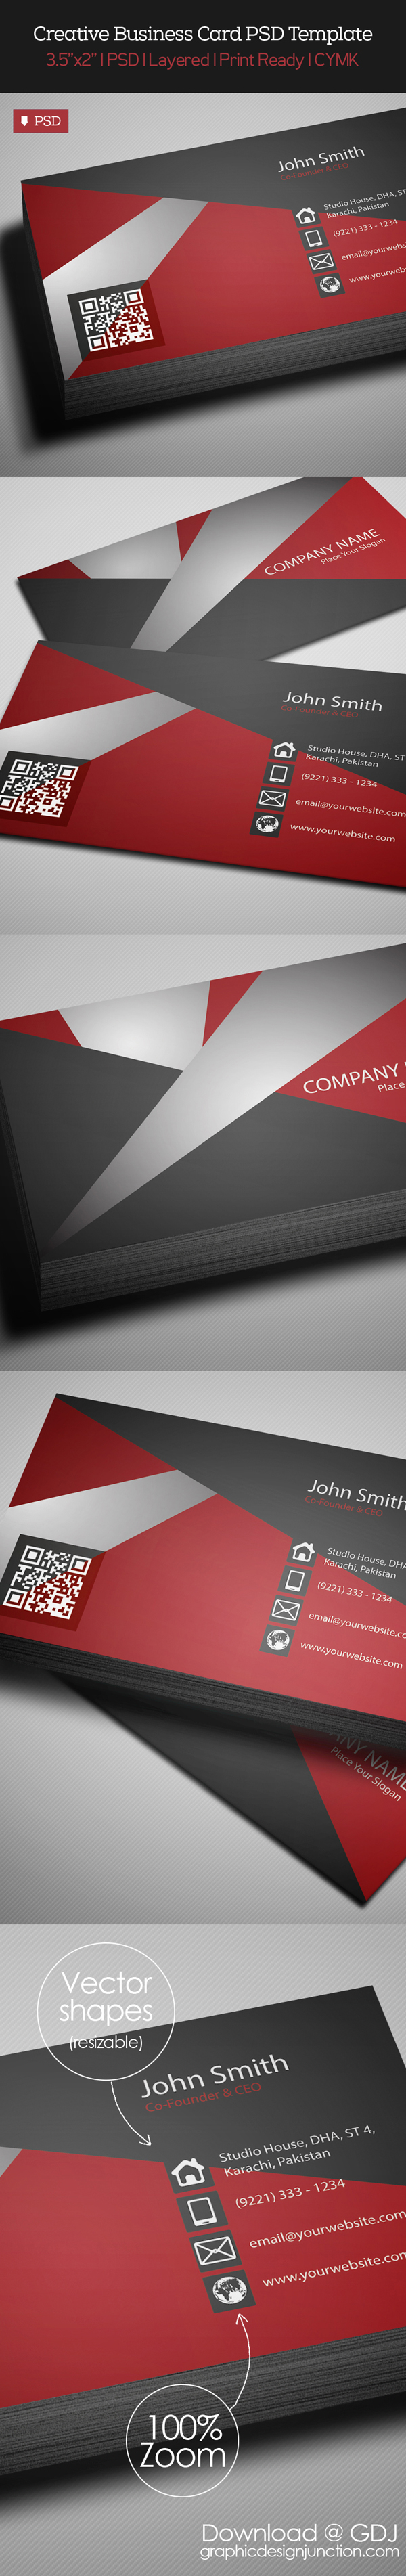 Free Creative Business Card Template PSD design